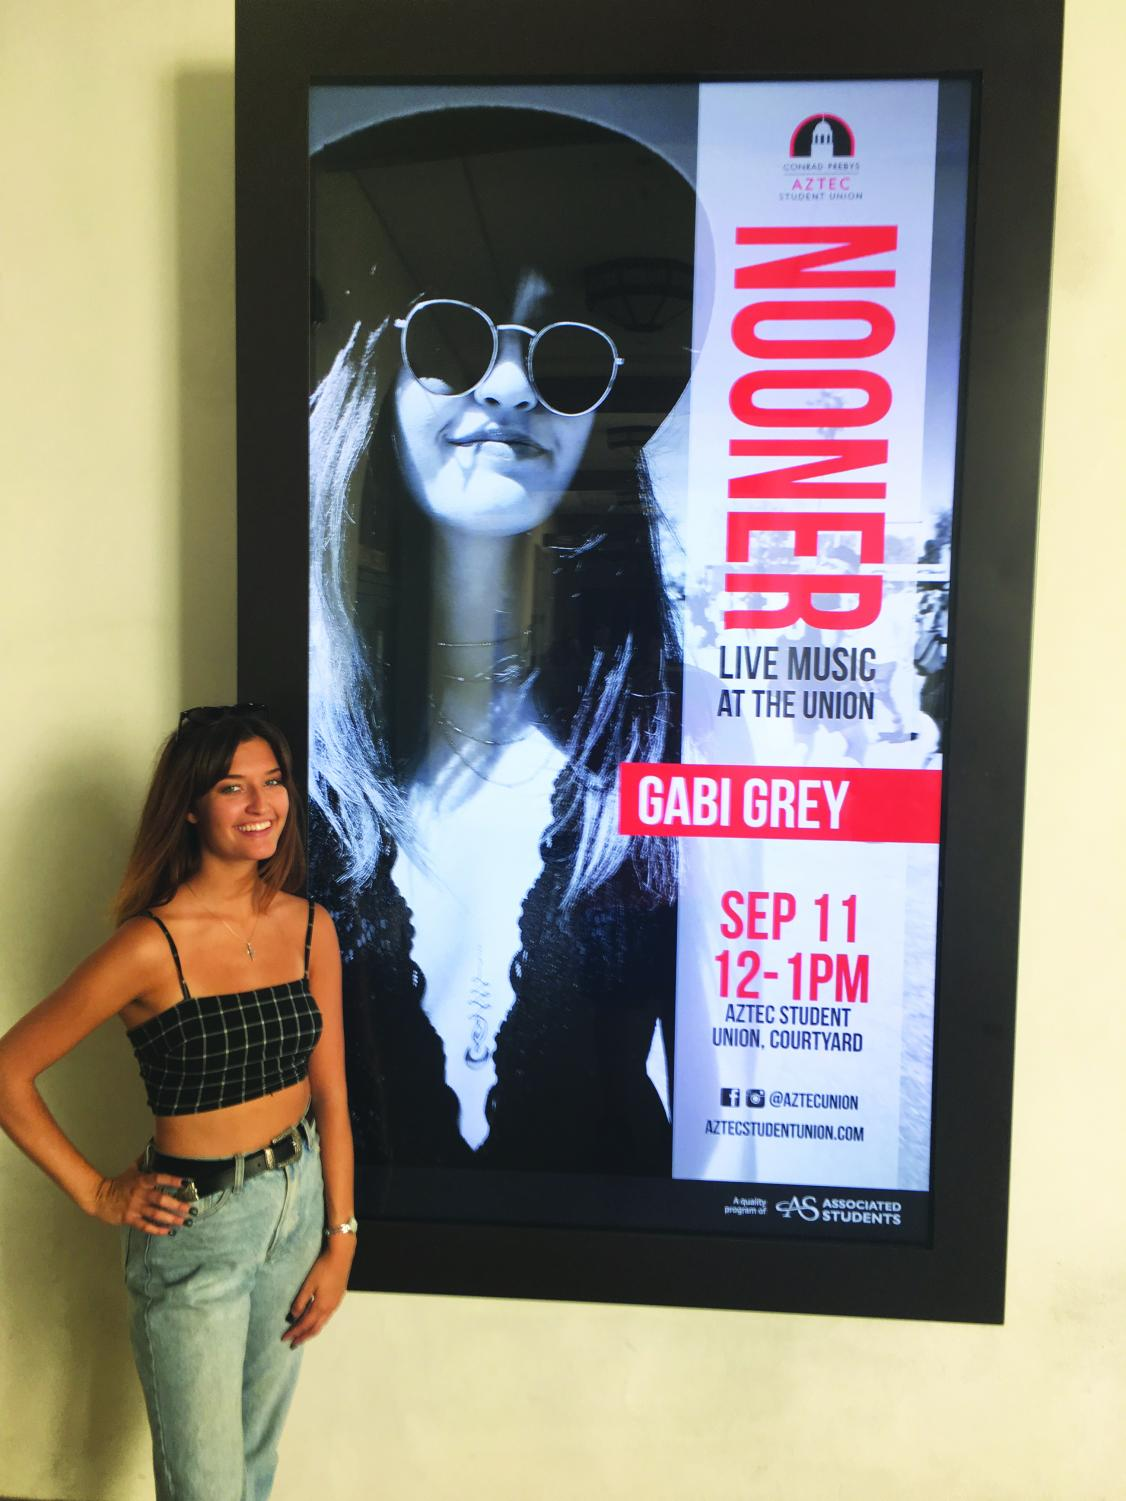 Budihas stands in front of her sign in the Aztec Student Union where she will be performing live on September 11.